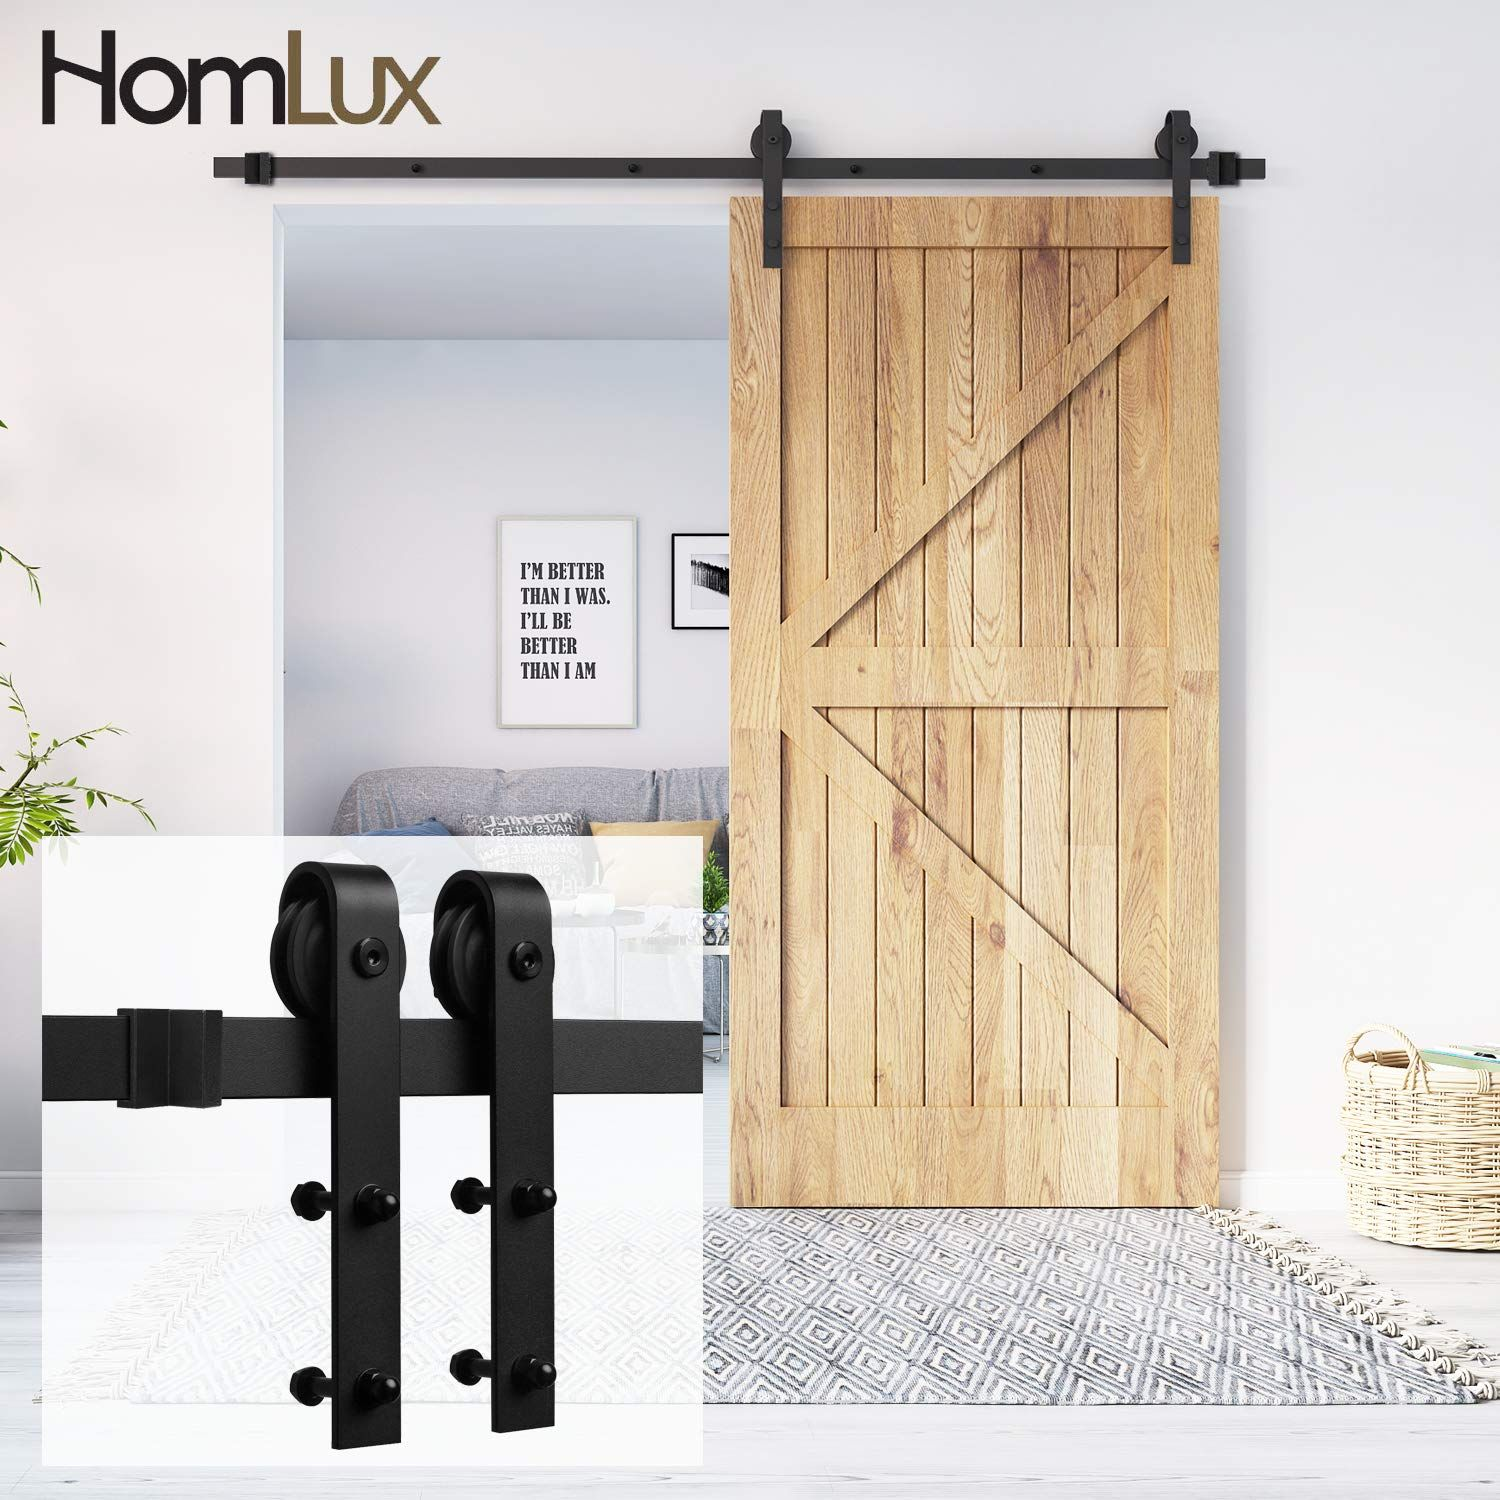 Homlux 6ft Heavy Duty Sturdy Sliding Barn Door Hardware Kit One Door Smoothly And Quietly Simple And Eas Barn Door Sliding Barn Door Hardware Barn Door Kit